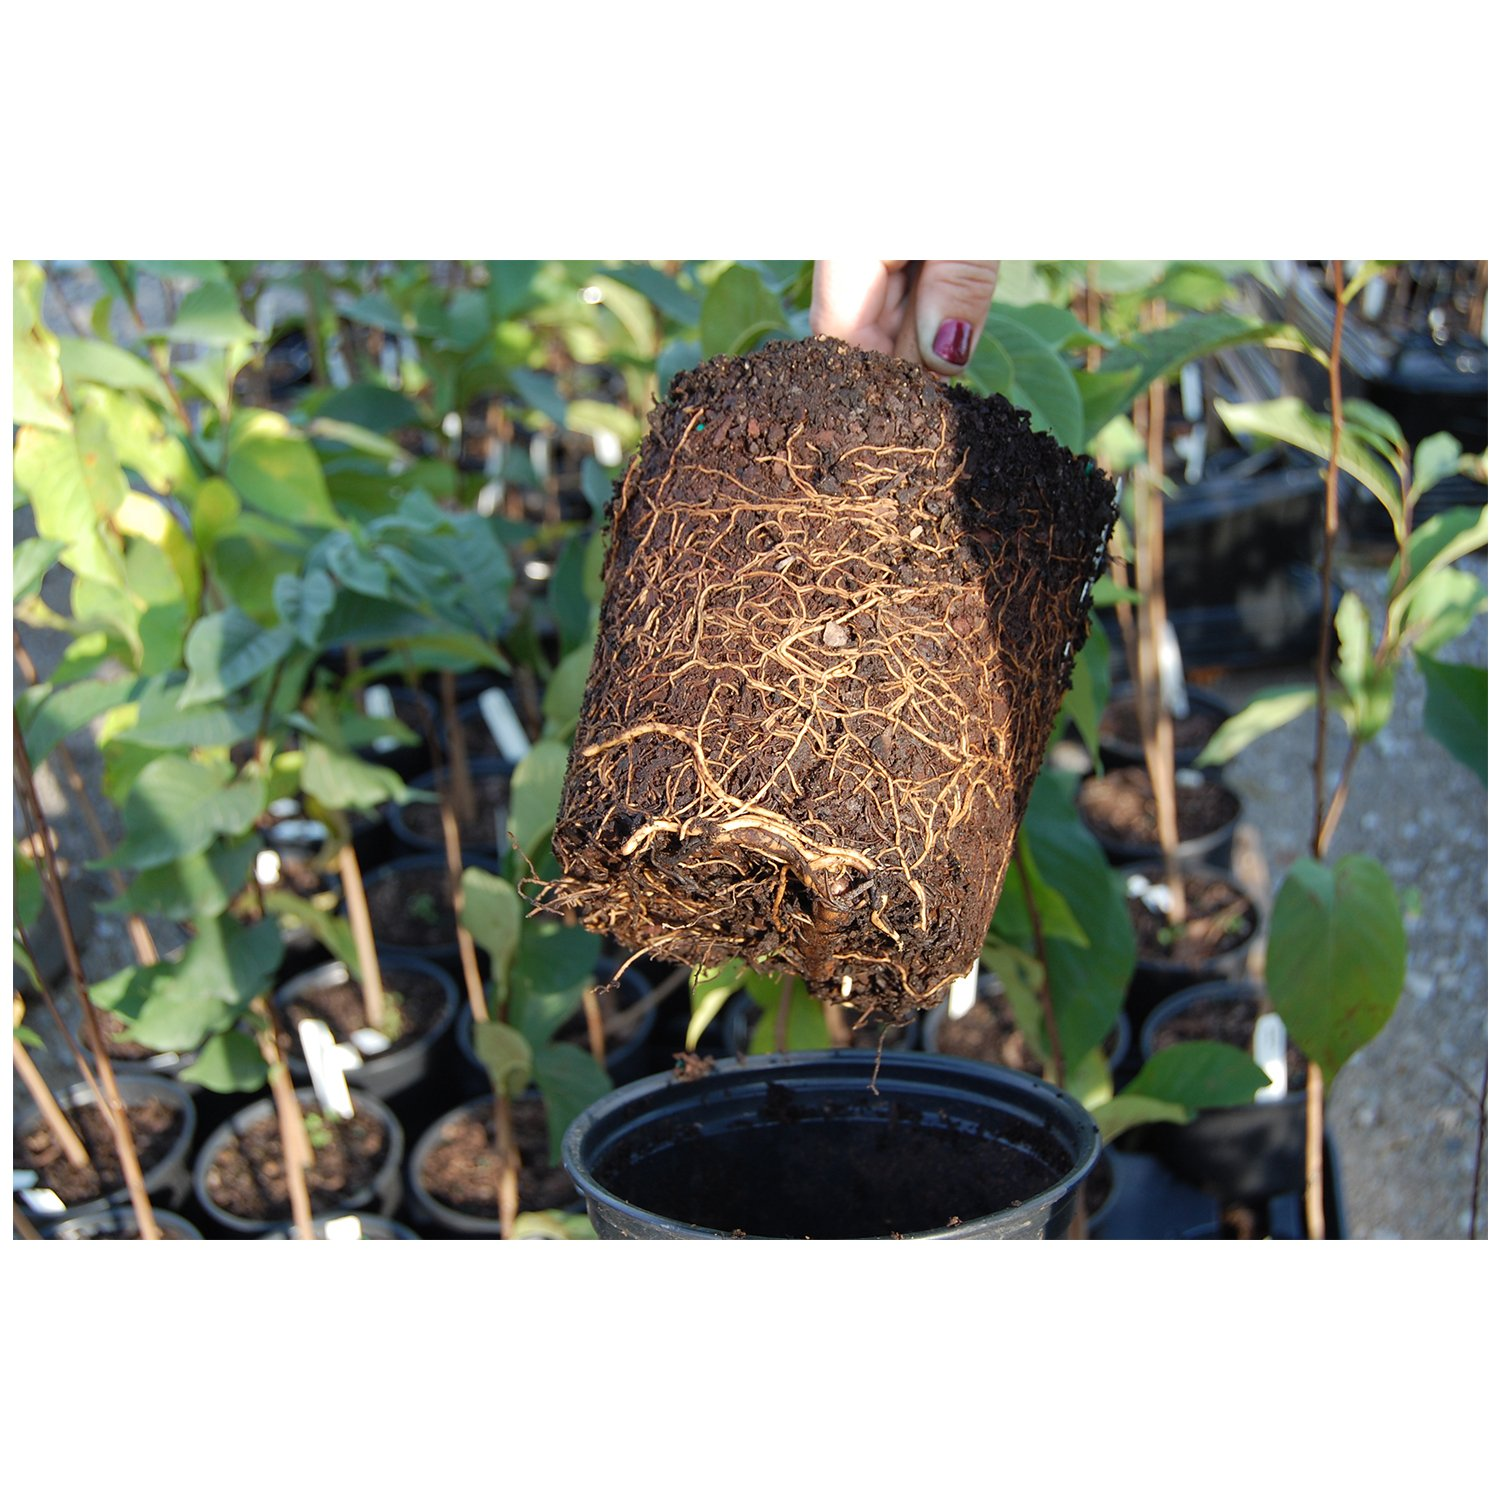 Paw-Paw Tree Asimina triloba Edible Fruit Berry Hardy Heavy Roots - One Trade Gallon Pot - 2 plant by Growers Solution by Grower's Solution (Image #1)